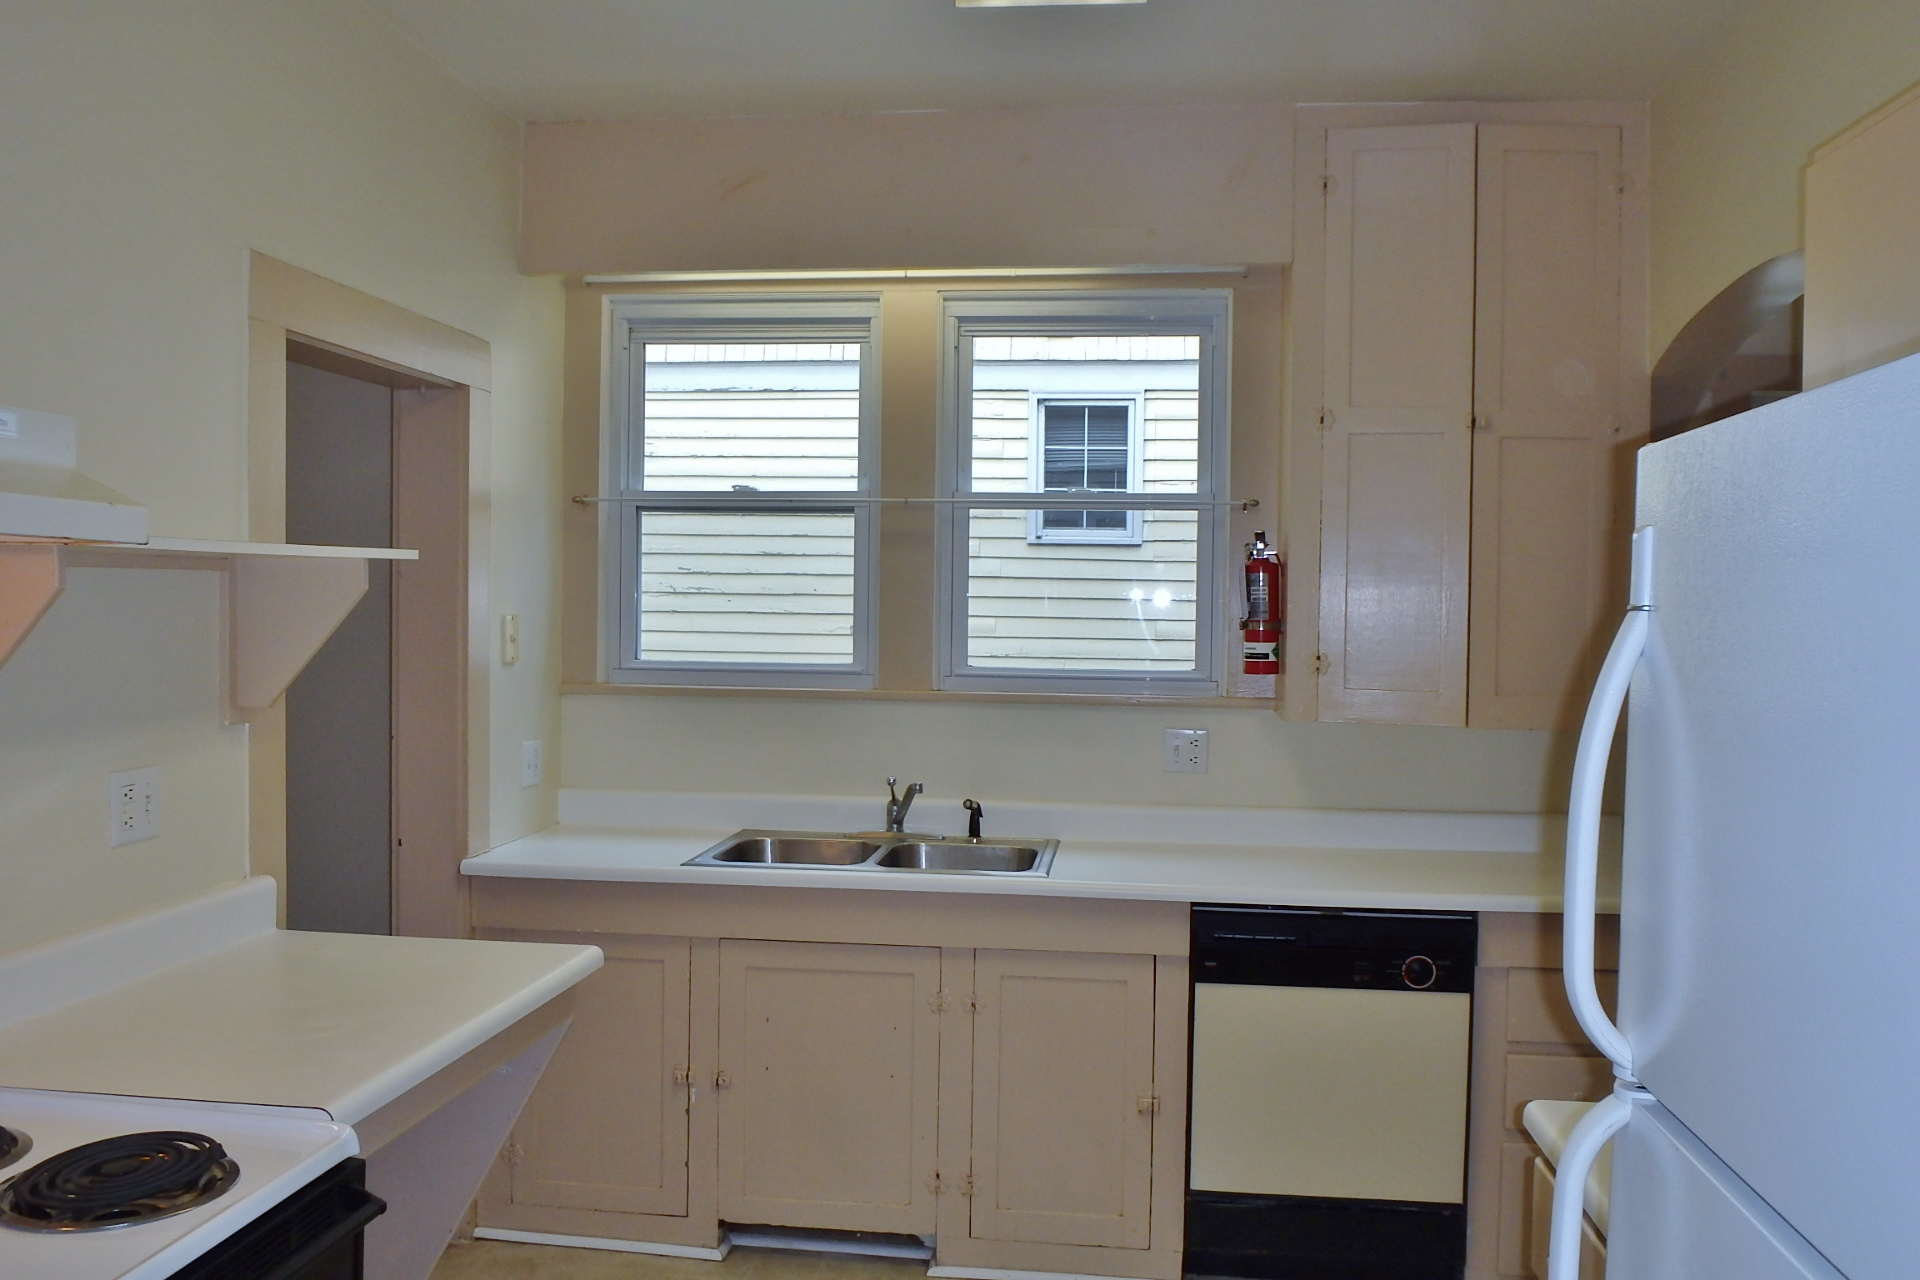 Kitchen photo of the house for rent at 250 S. Barnard Street, State College.